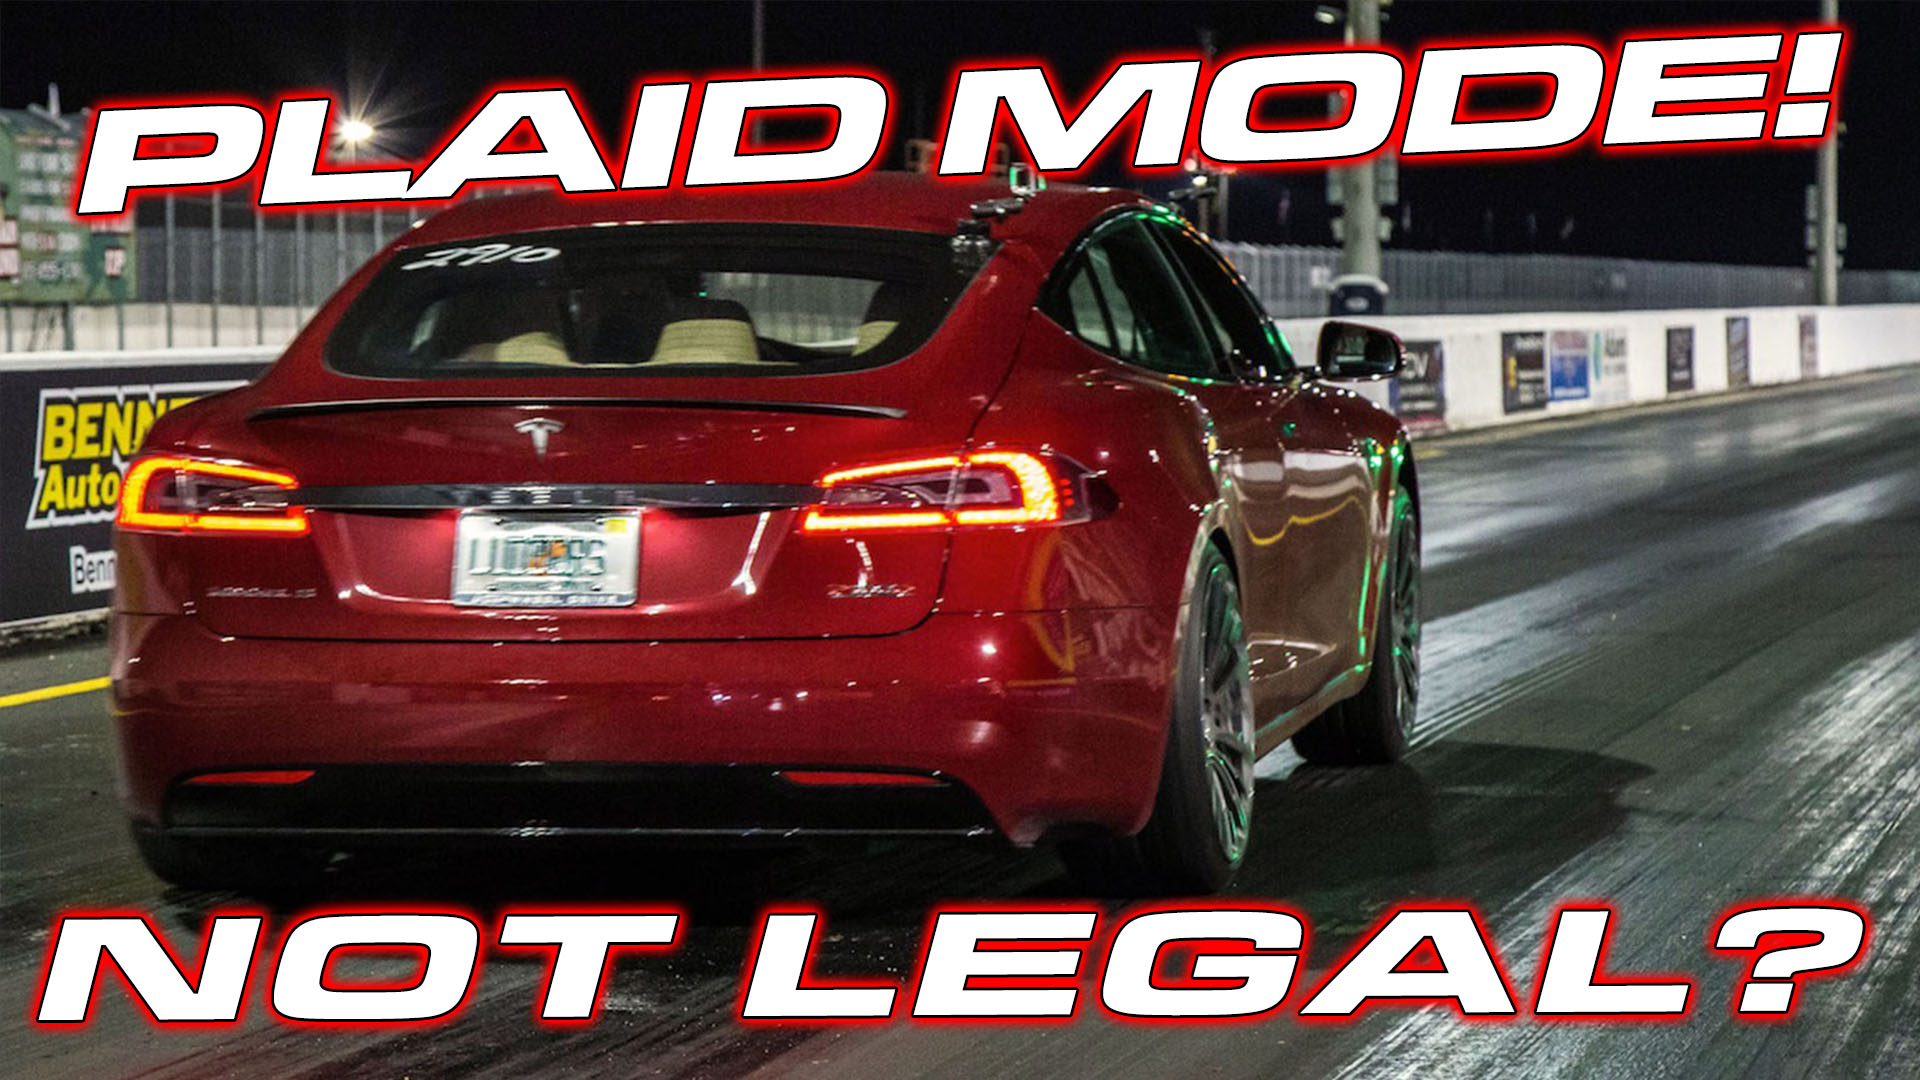 model s plaid mode runs 8's in 1/4 mile